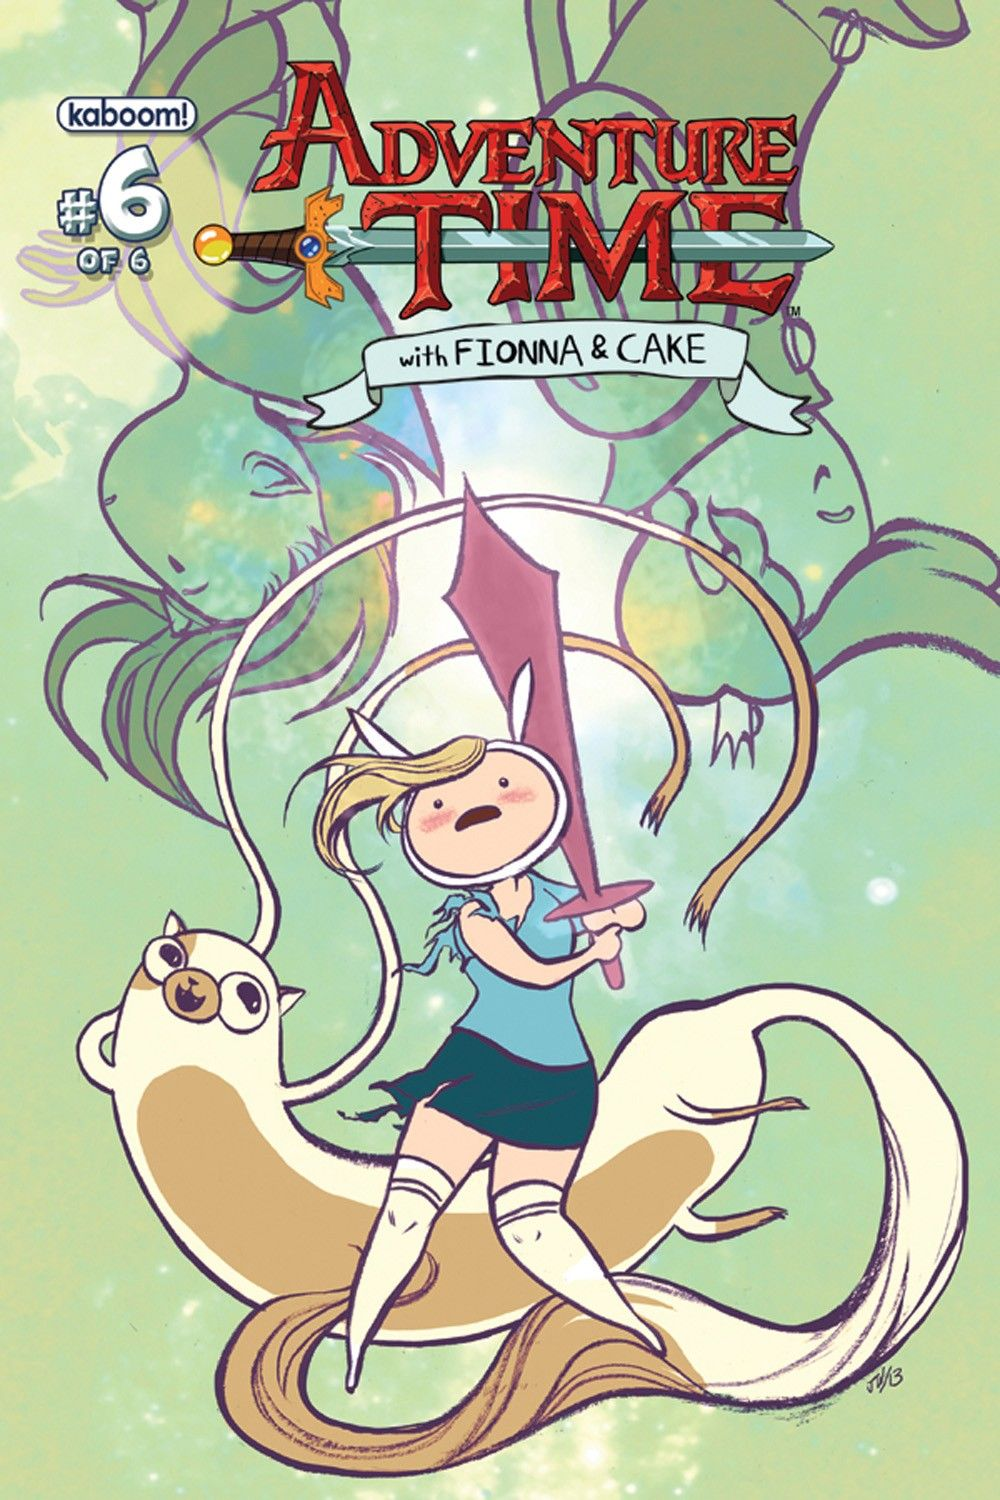 Adventure time with fionna and cake 6 covers released